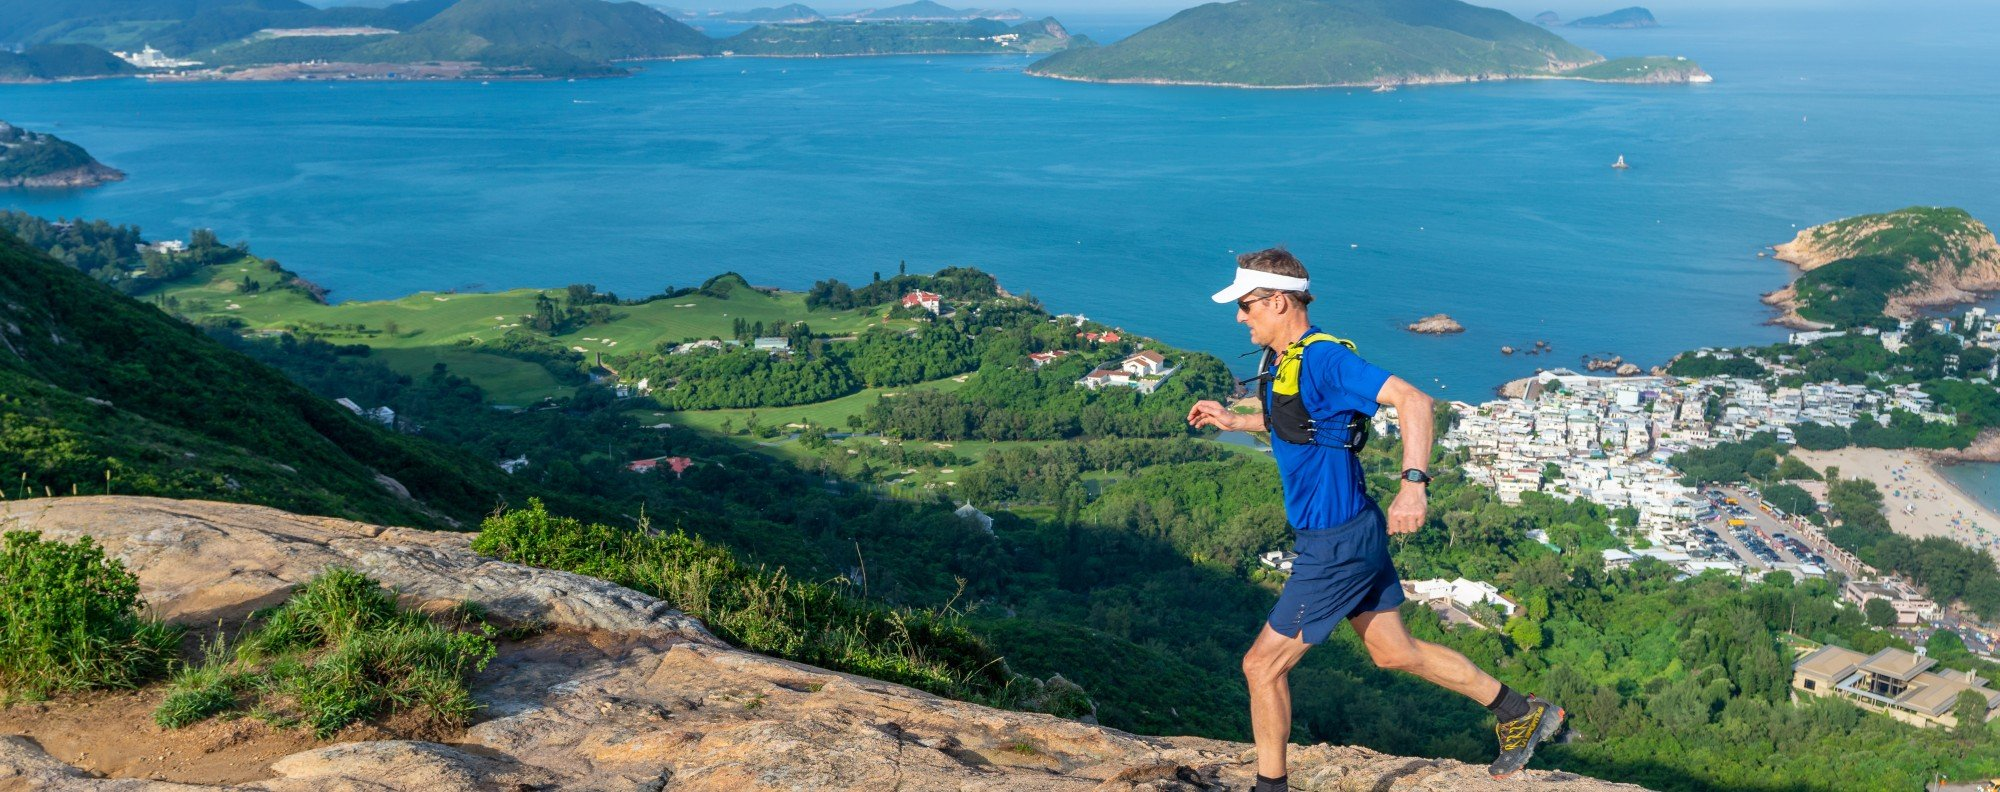 Mark Western became the first person to run around Hong Kong by hugging the coastline, sticking to the Shenzen border, and running around Lantau and Hong Kong Island. Photos: Handout